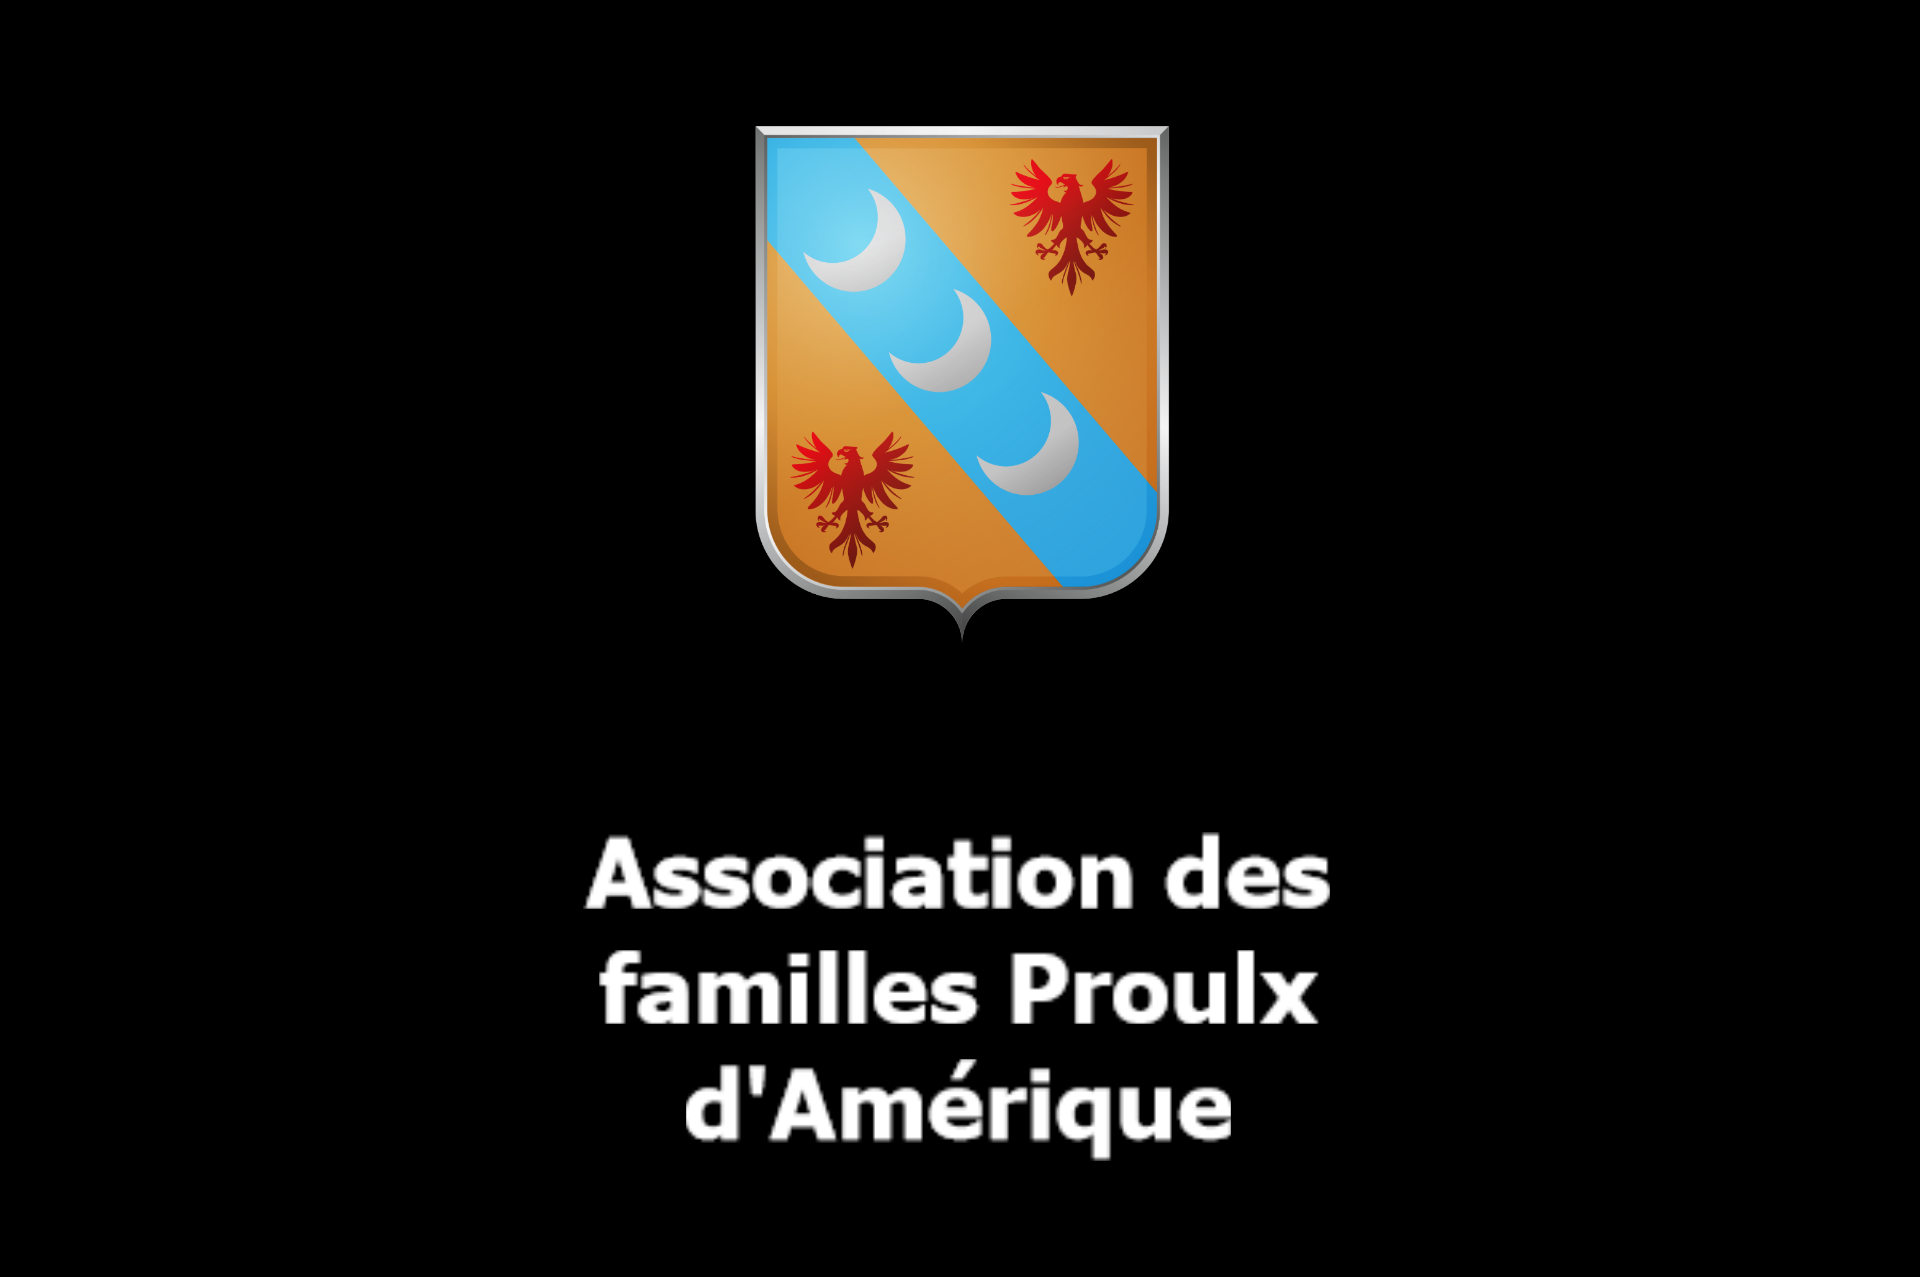 Bibliography – Addition of the latest articles of Figure de Prou